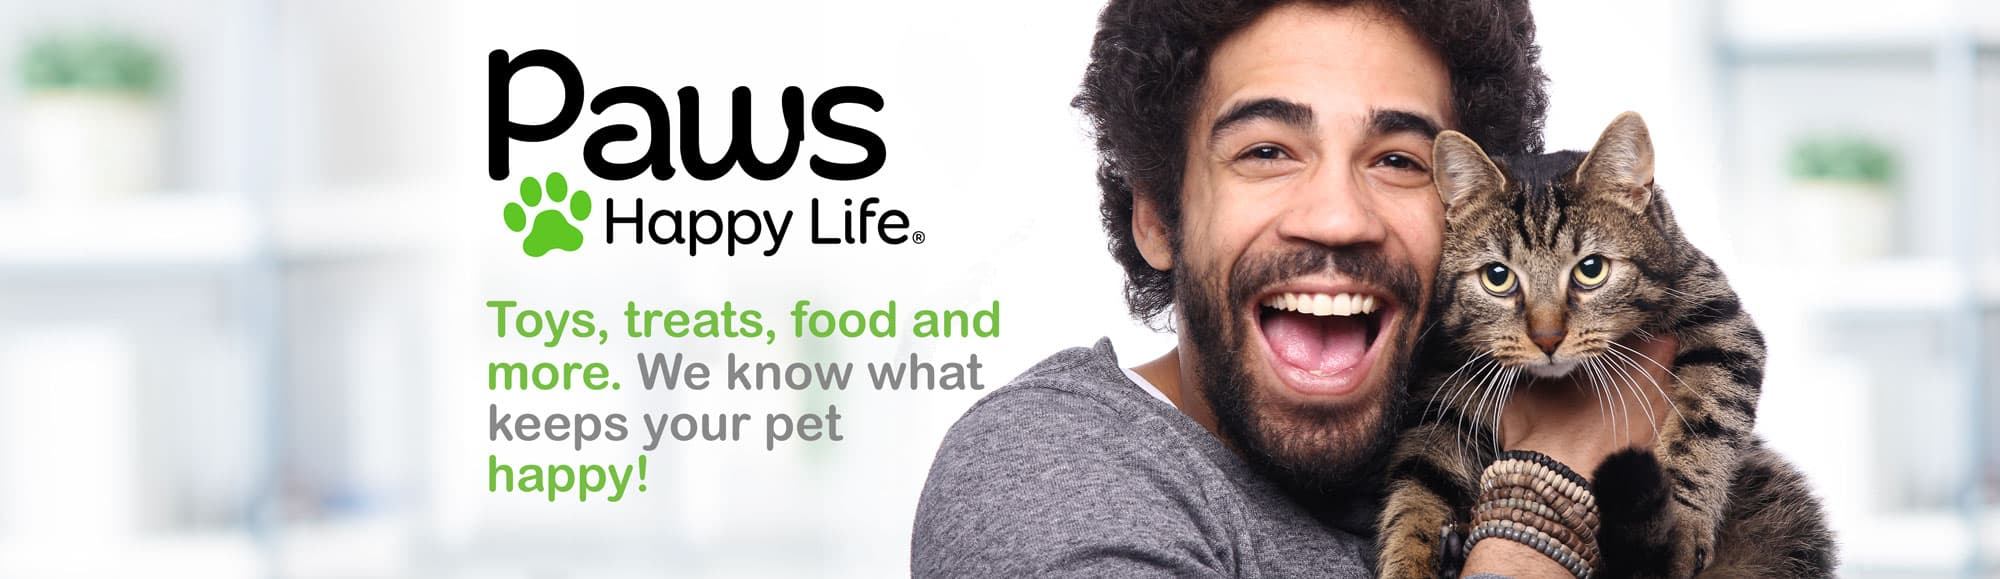 Toys, treats, food and more. We know what keeps your pet happy!